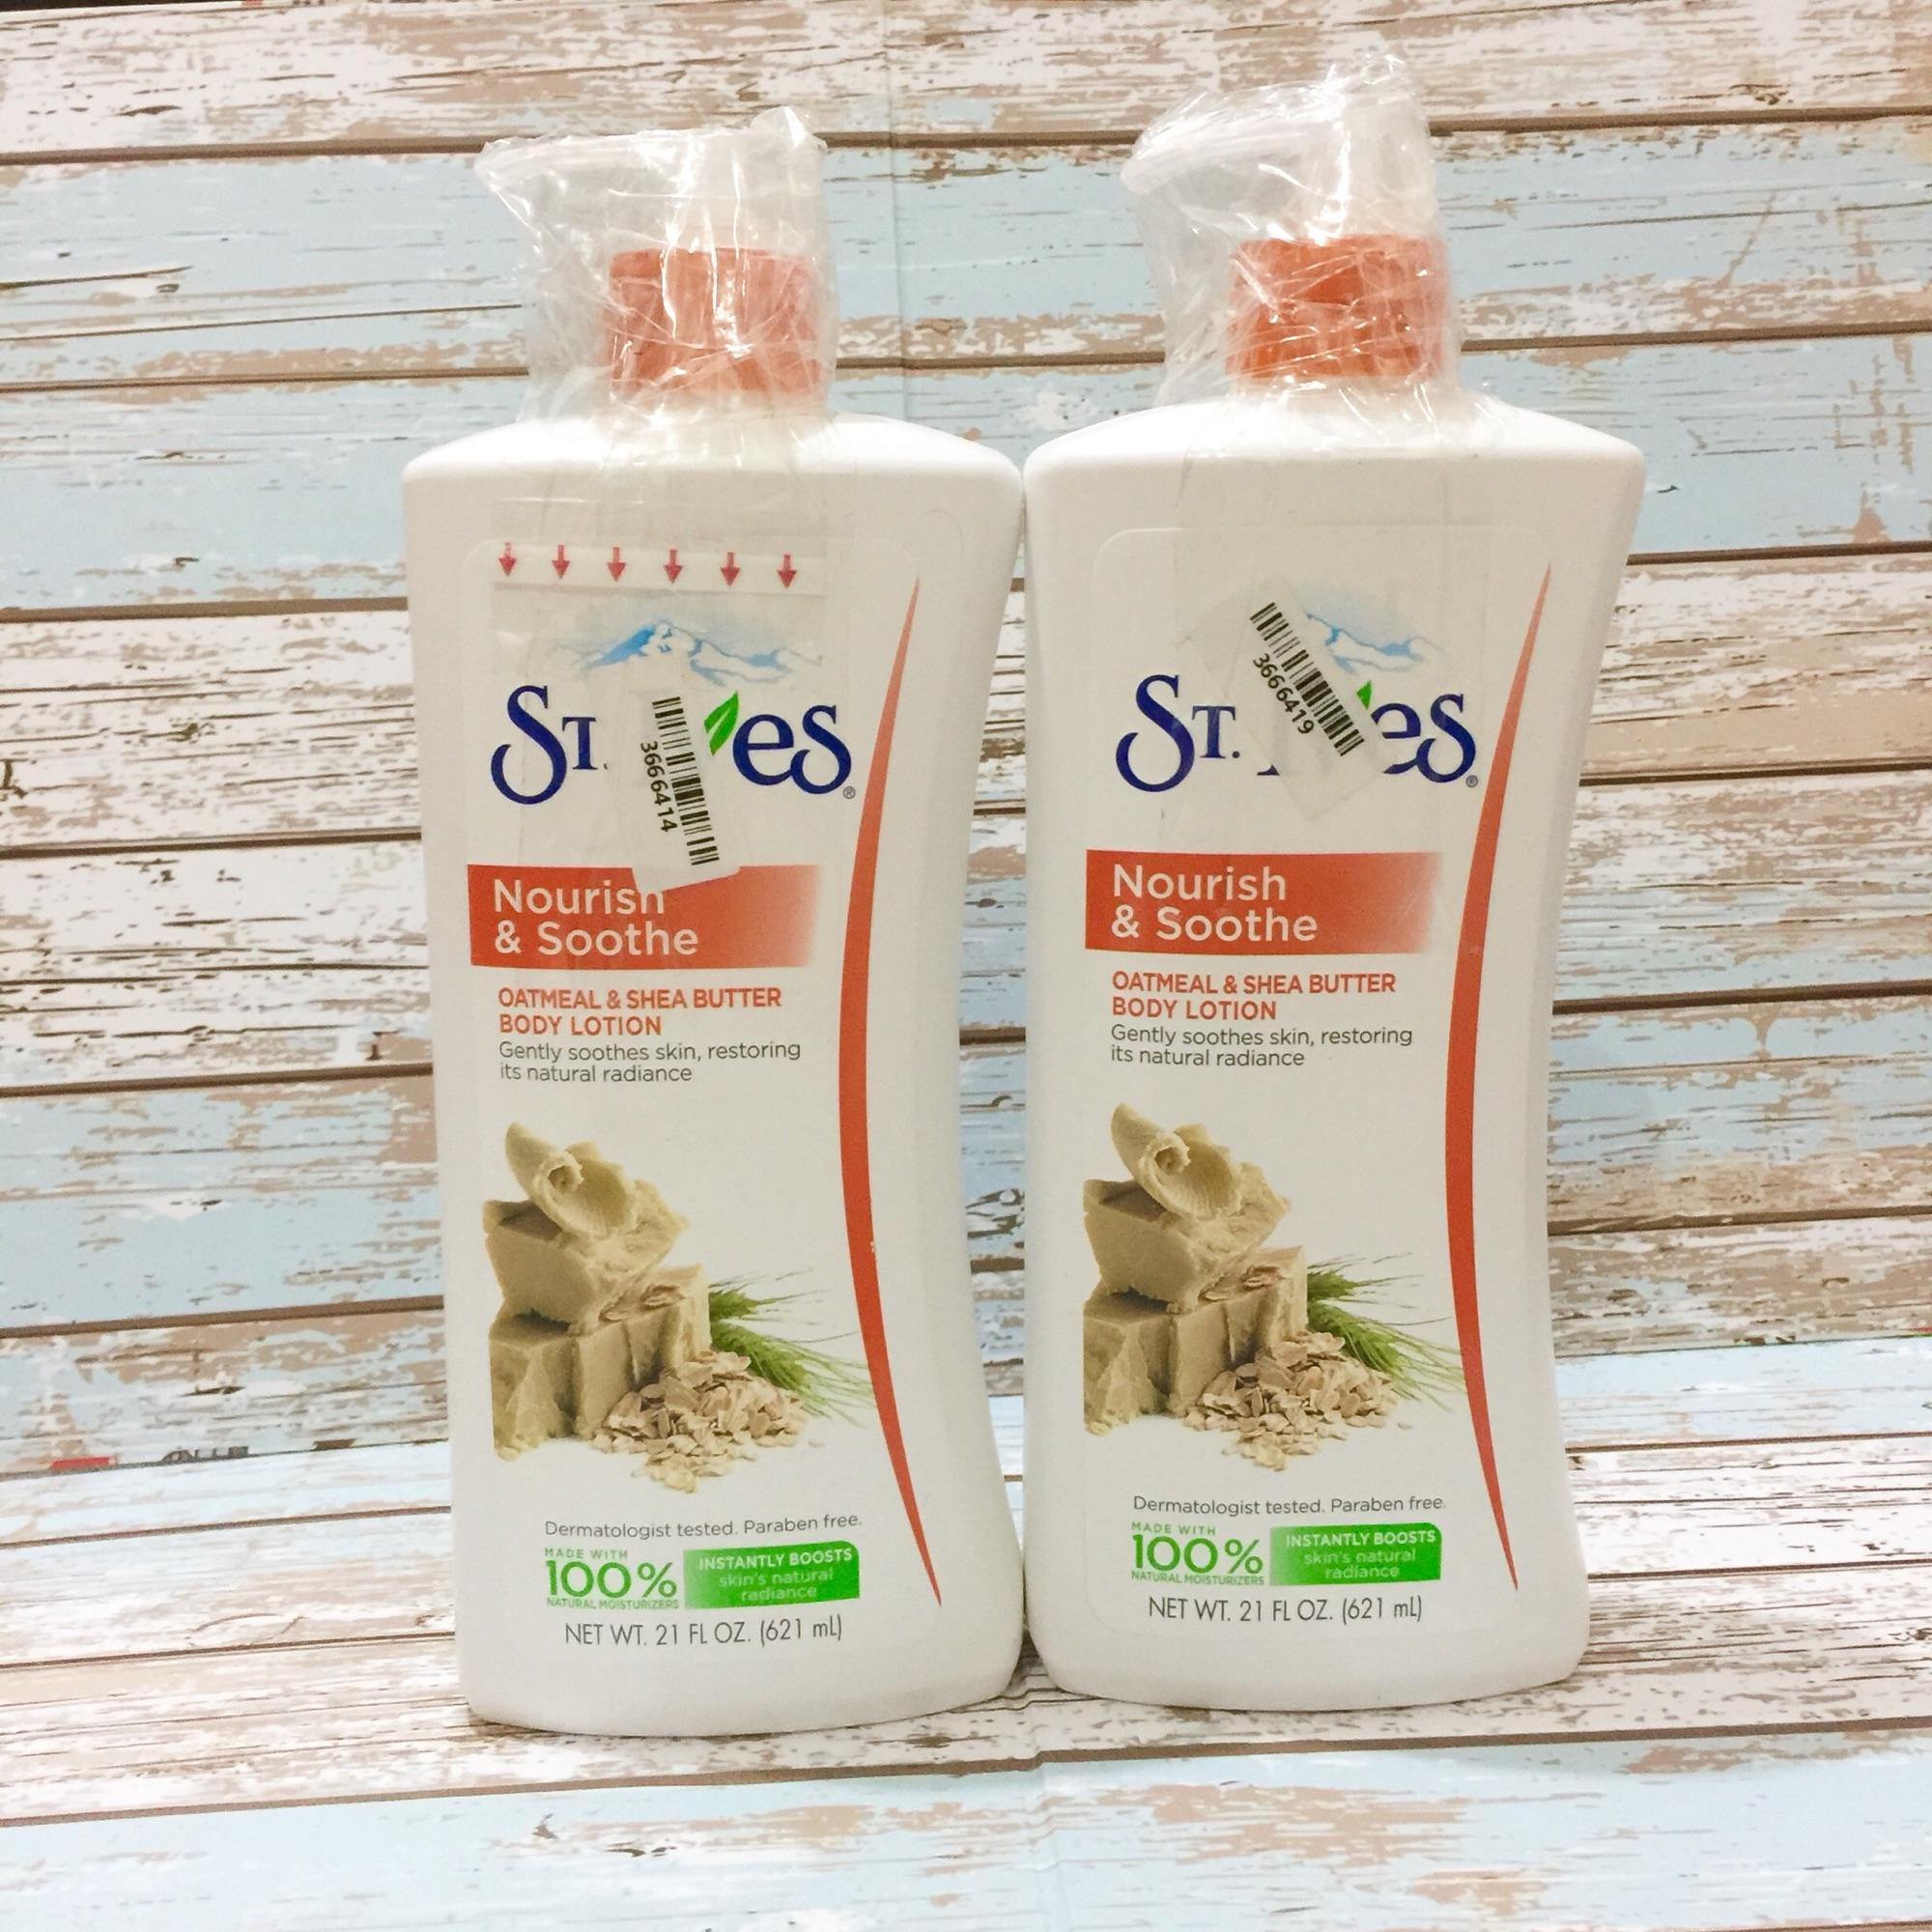 Kelebihan Velvy Hand Body Lotion Licorice Shea Butter Original 95 Ml Sabun Mandi L Occitane St Ives Oatmeal Jumbo 621ml